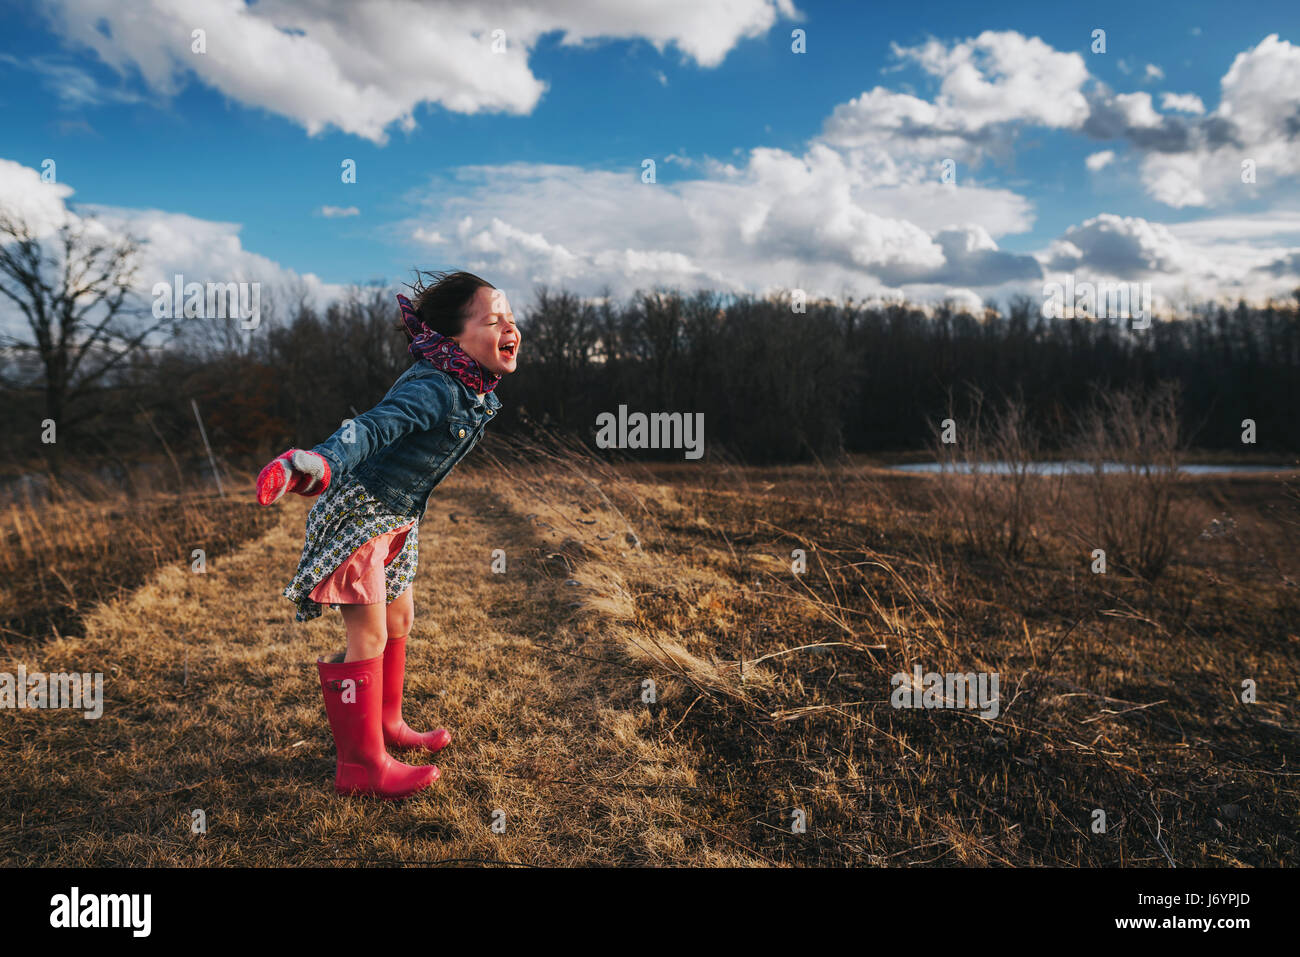 Girl with arms outstretched crier dans le vent Banque D'Images